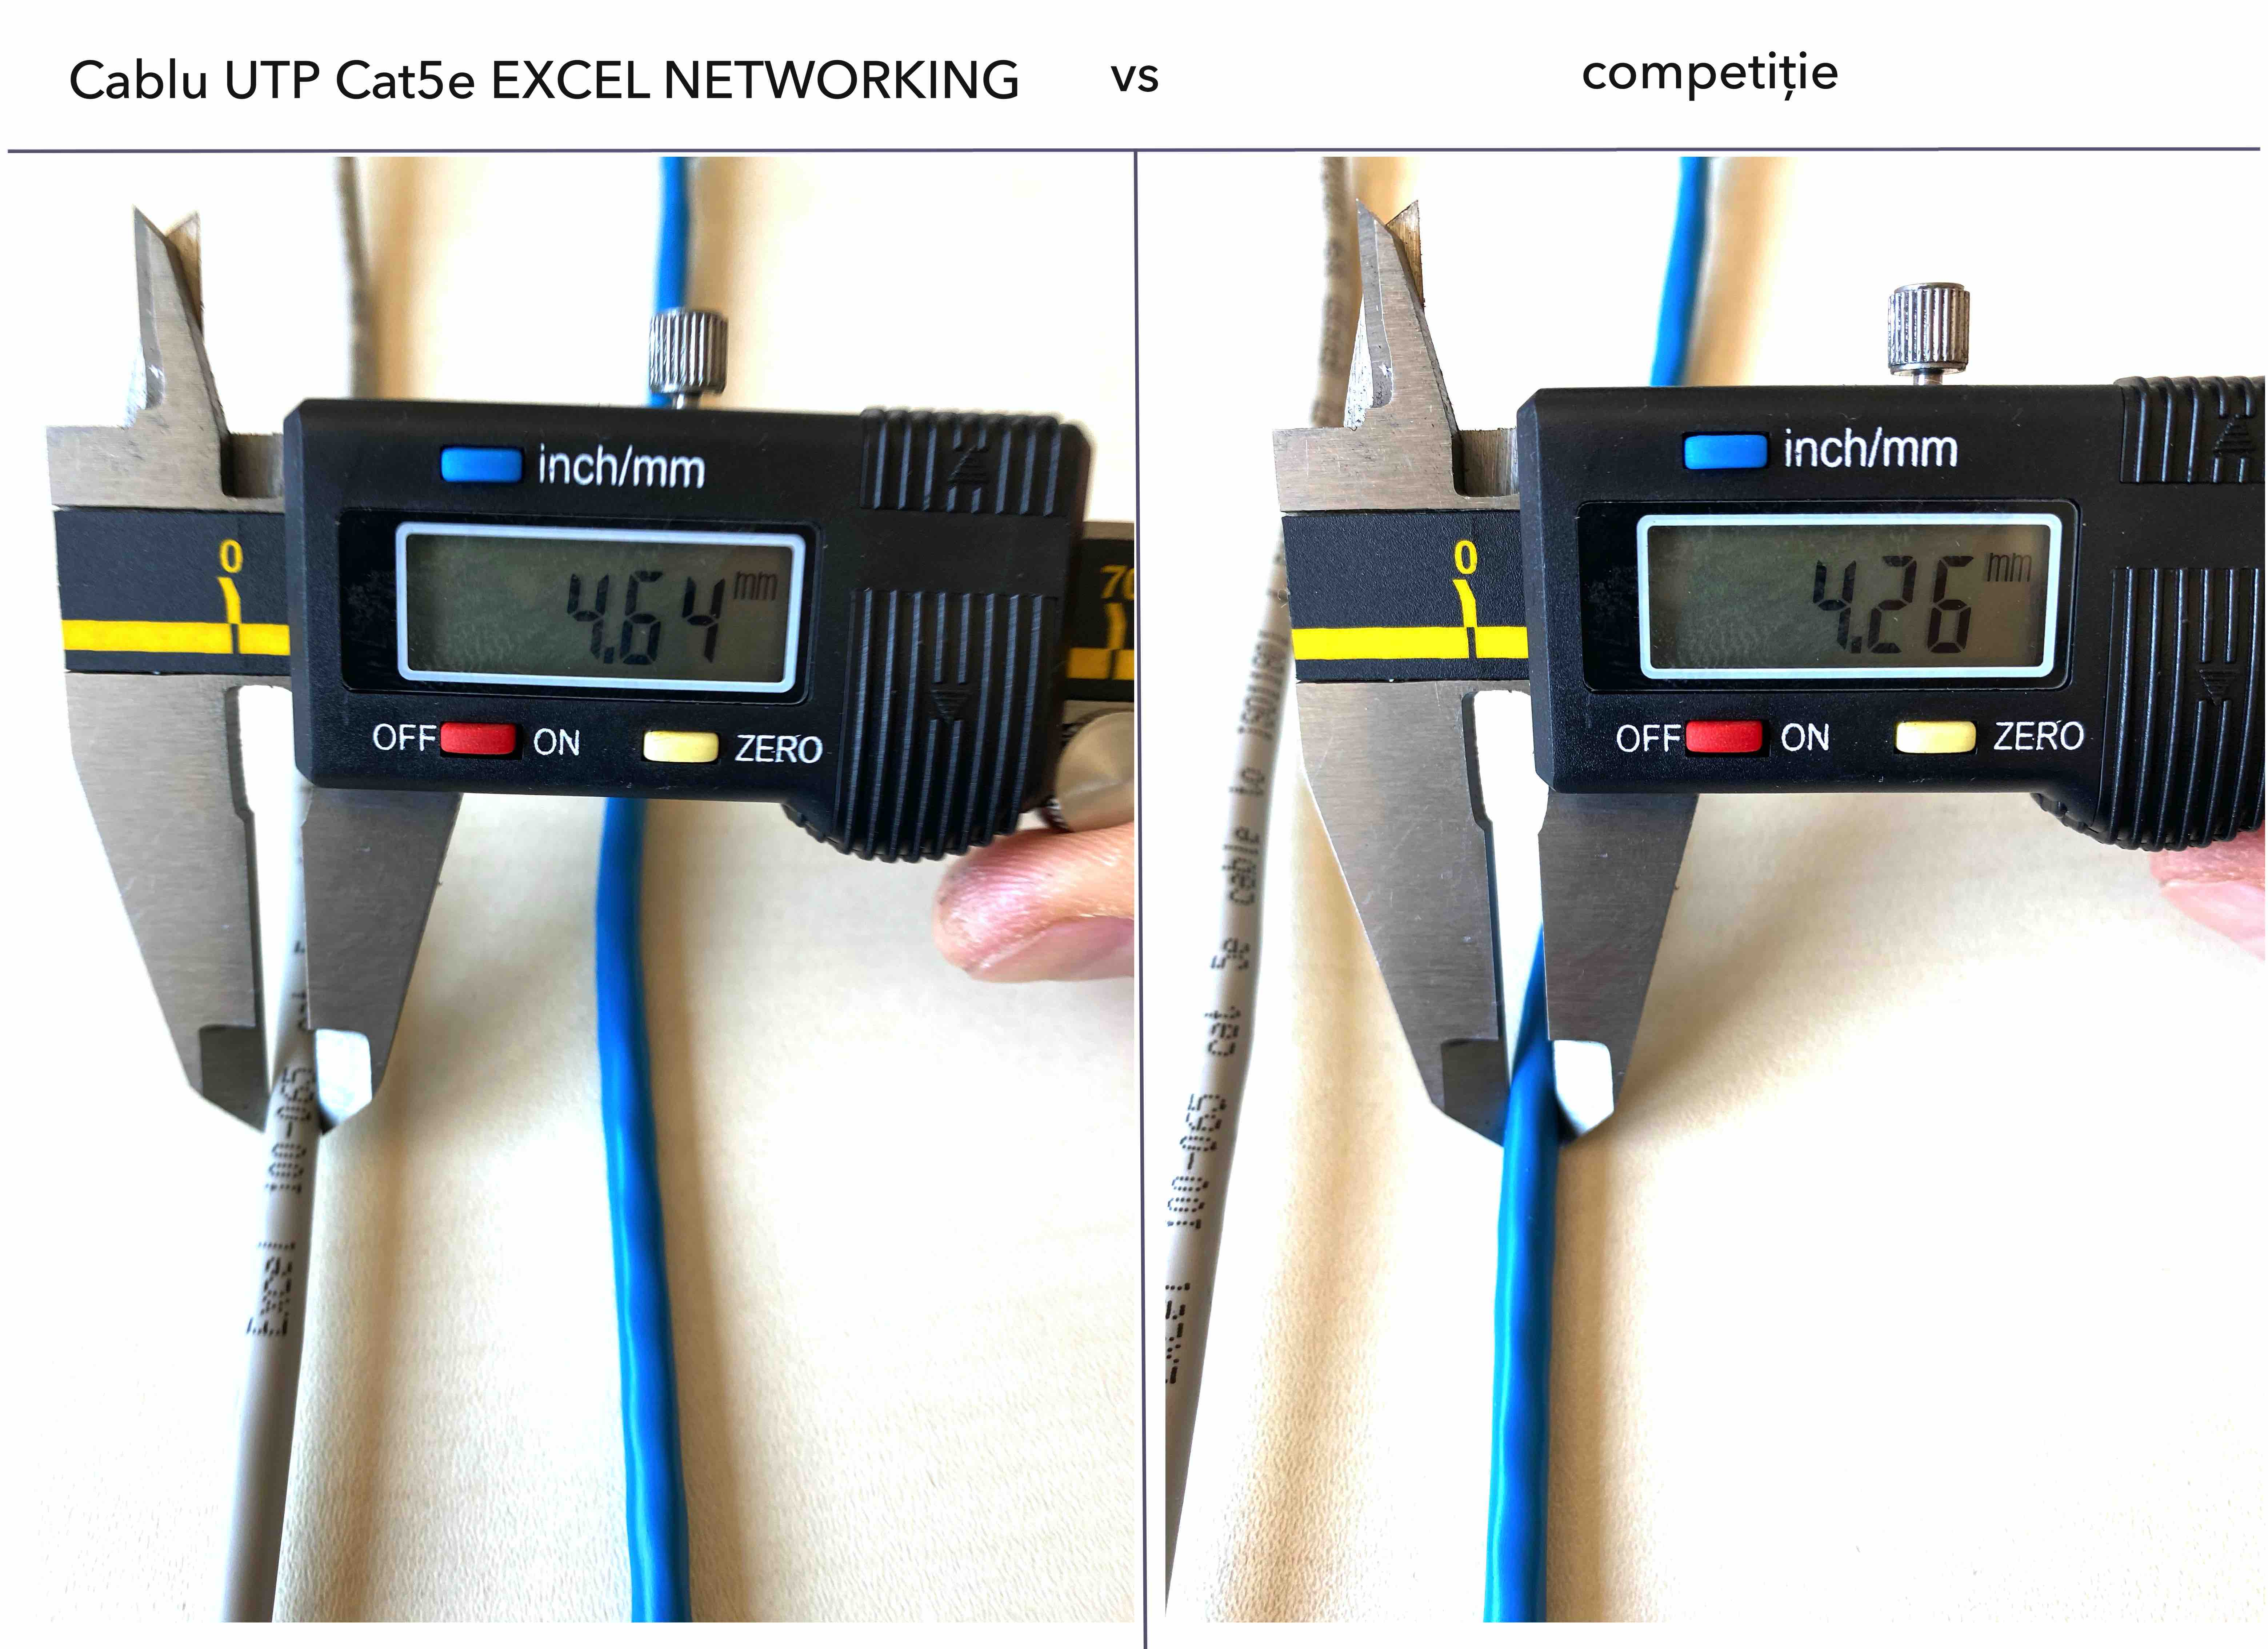 comparatie-cablu-excel-networking-vs-competitie